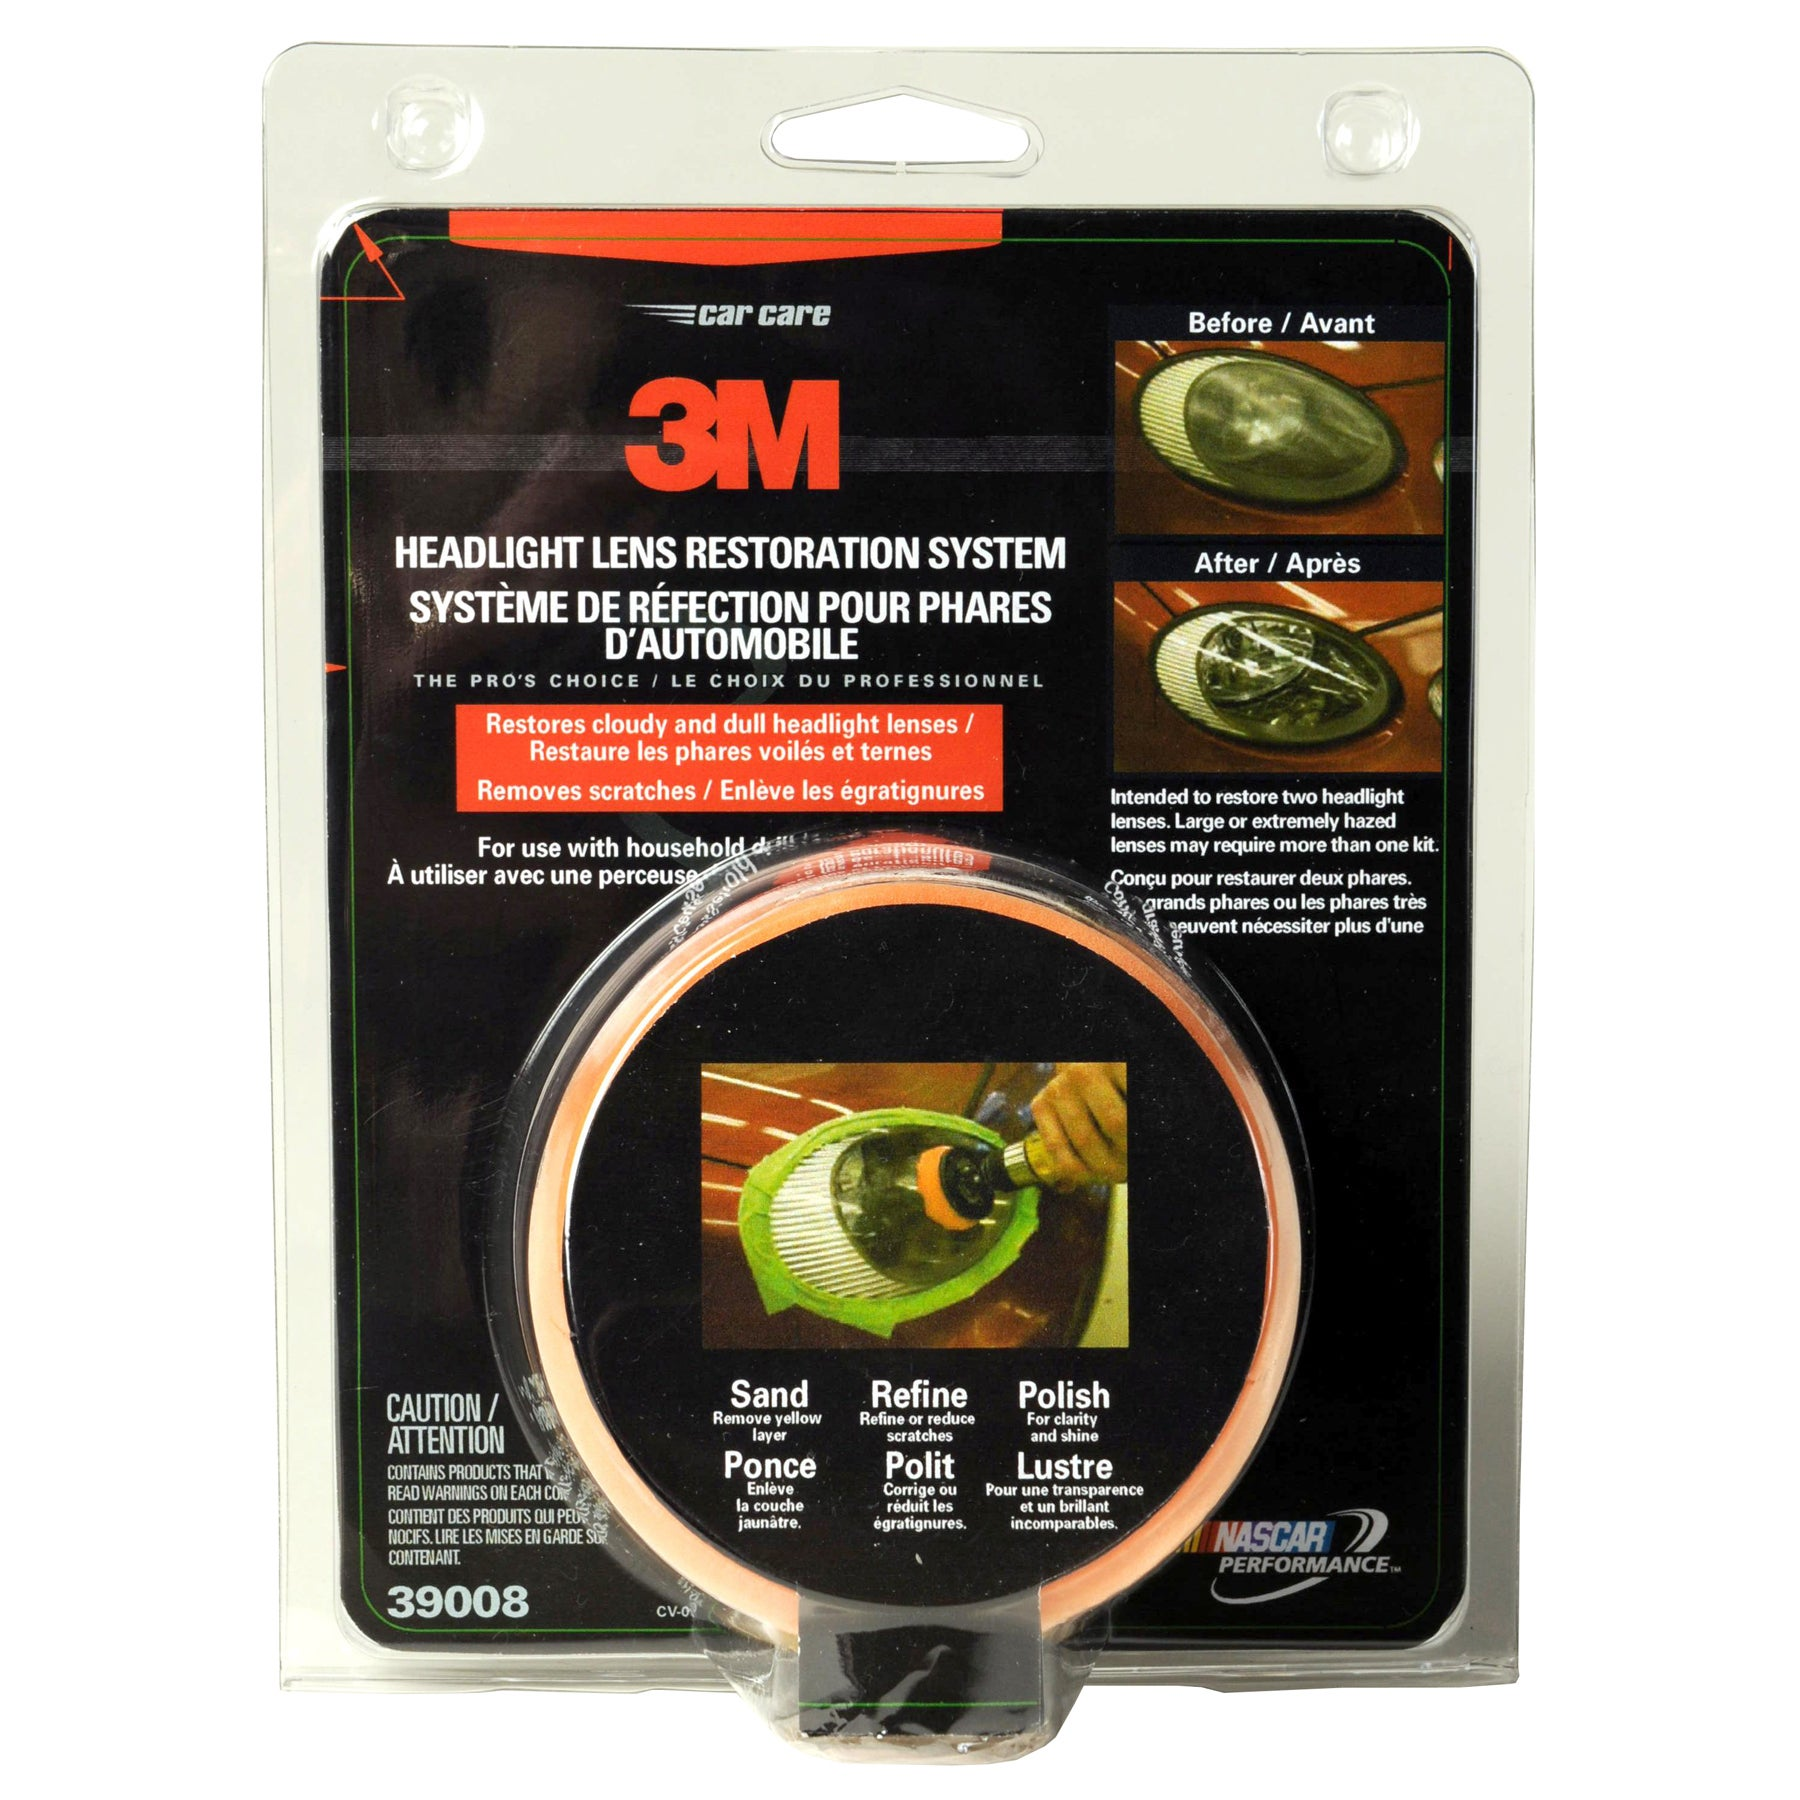 3M 39008 Headlight Lens Restoration System (Car care/clea...